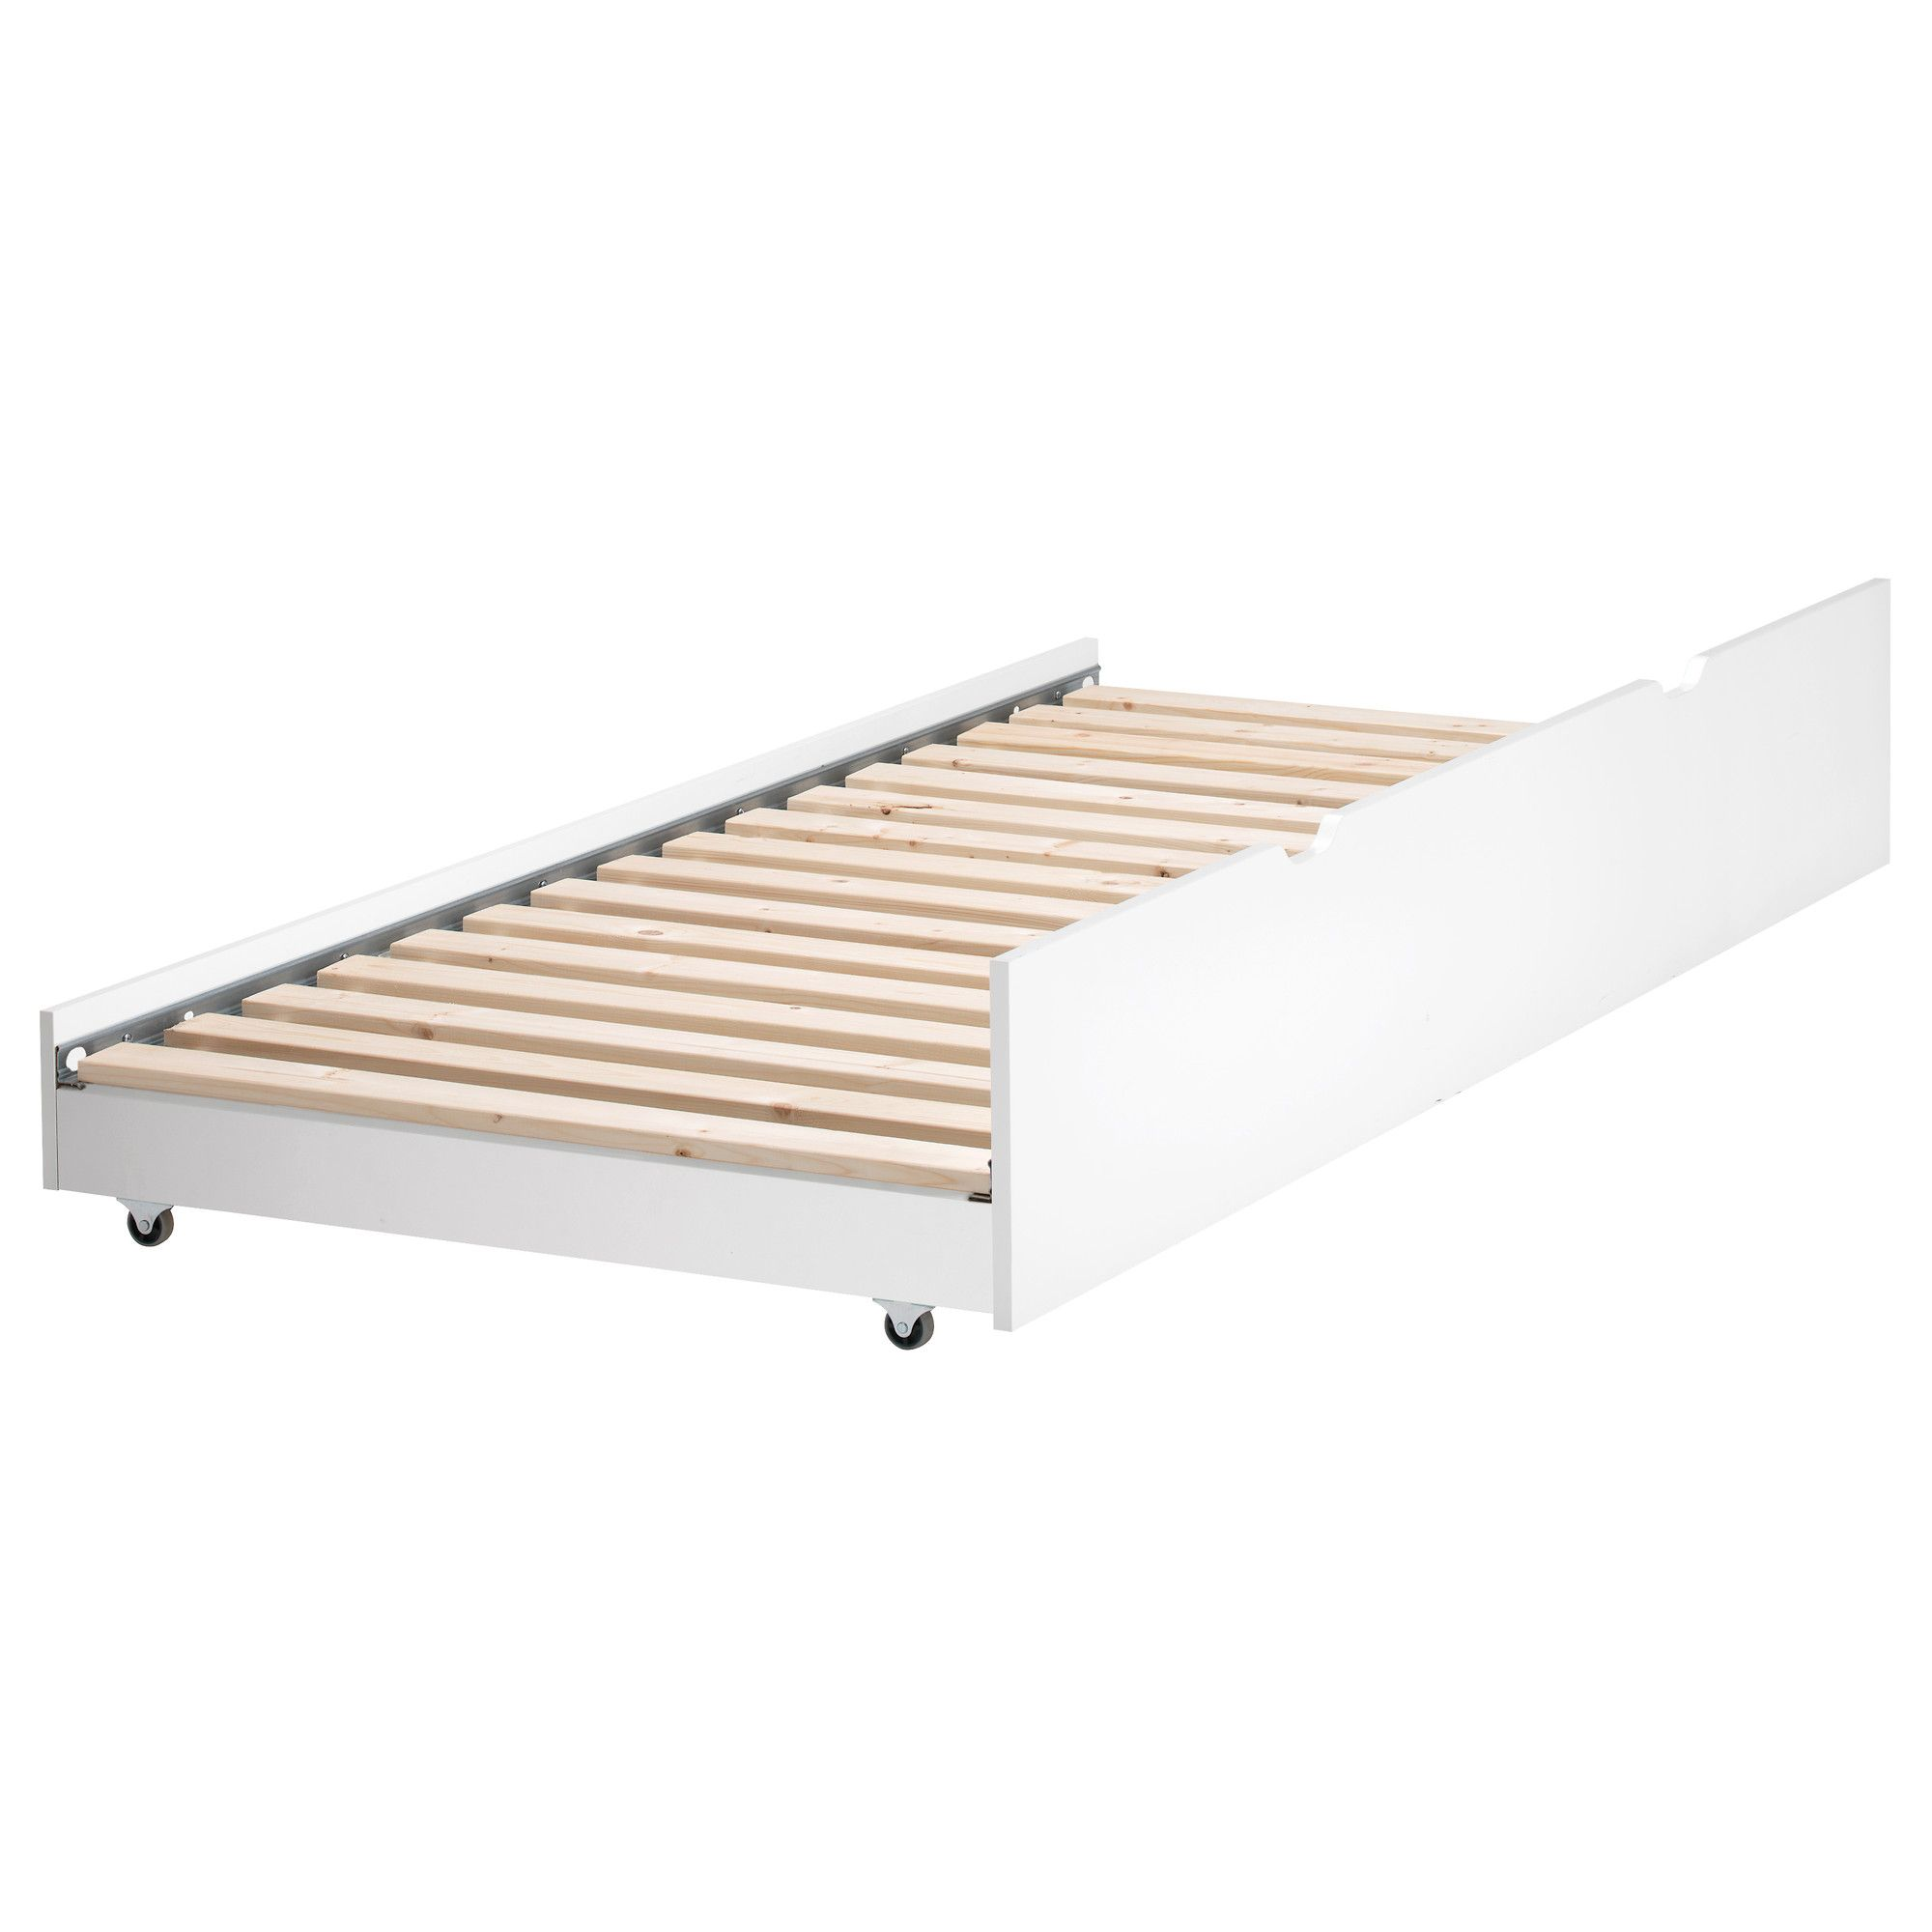 ikea flaxa pullout bed this pullout bed creates an extra place to sleep and stores under the flaxa bed frame and headboard